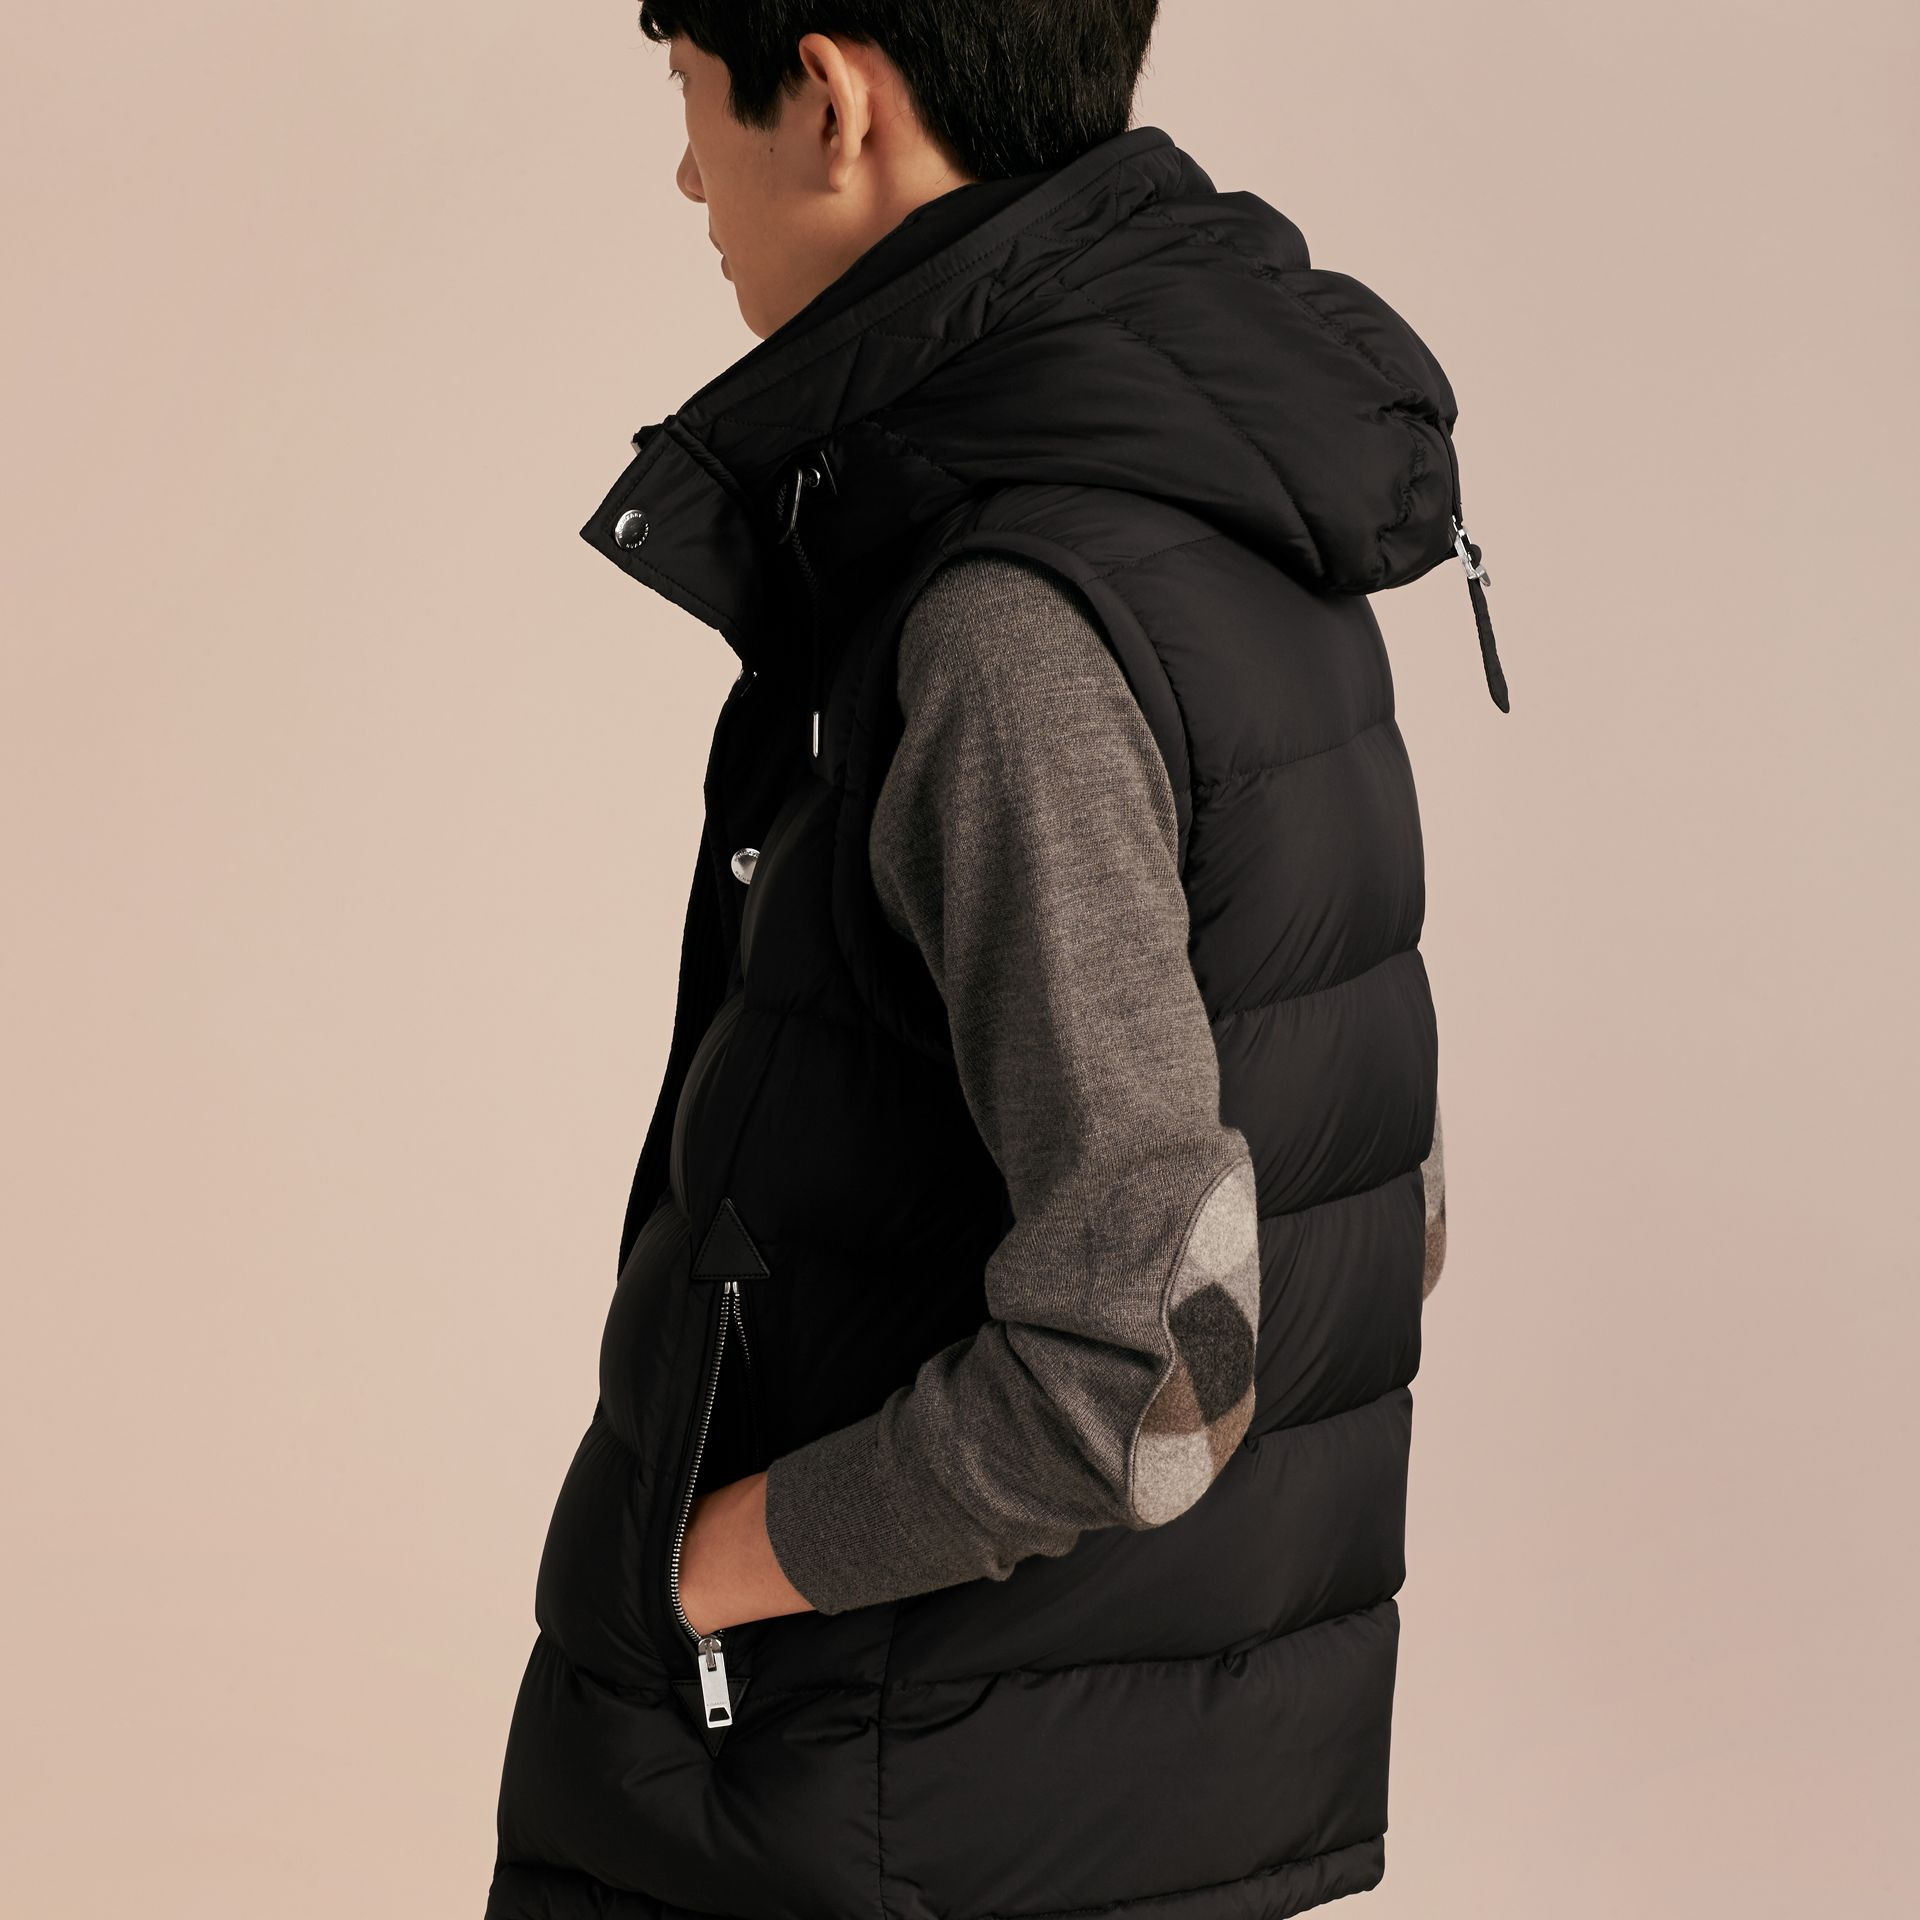 Black Down-filled Hooded Jacket with Detachable Sleeves Black - gallery image 6